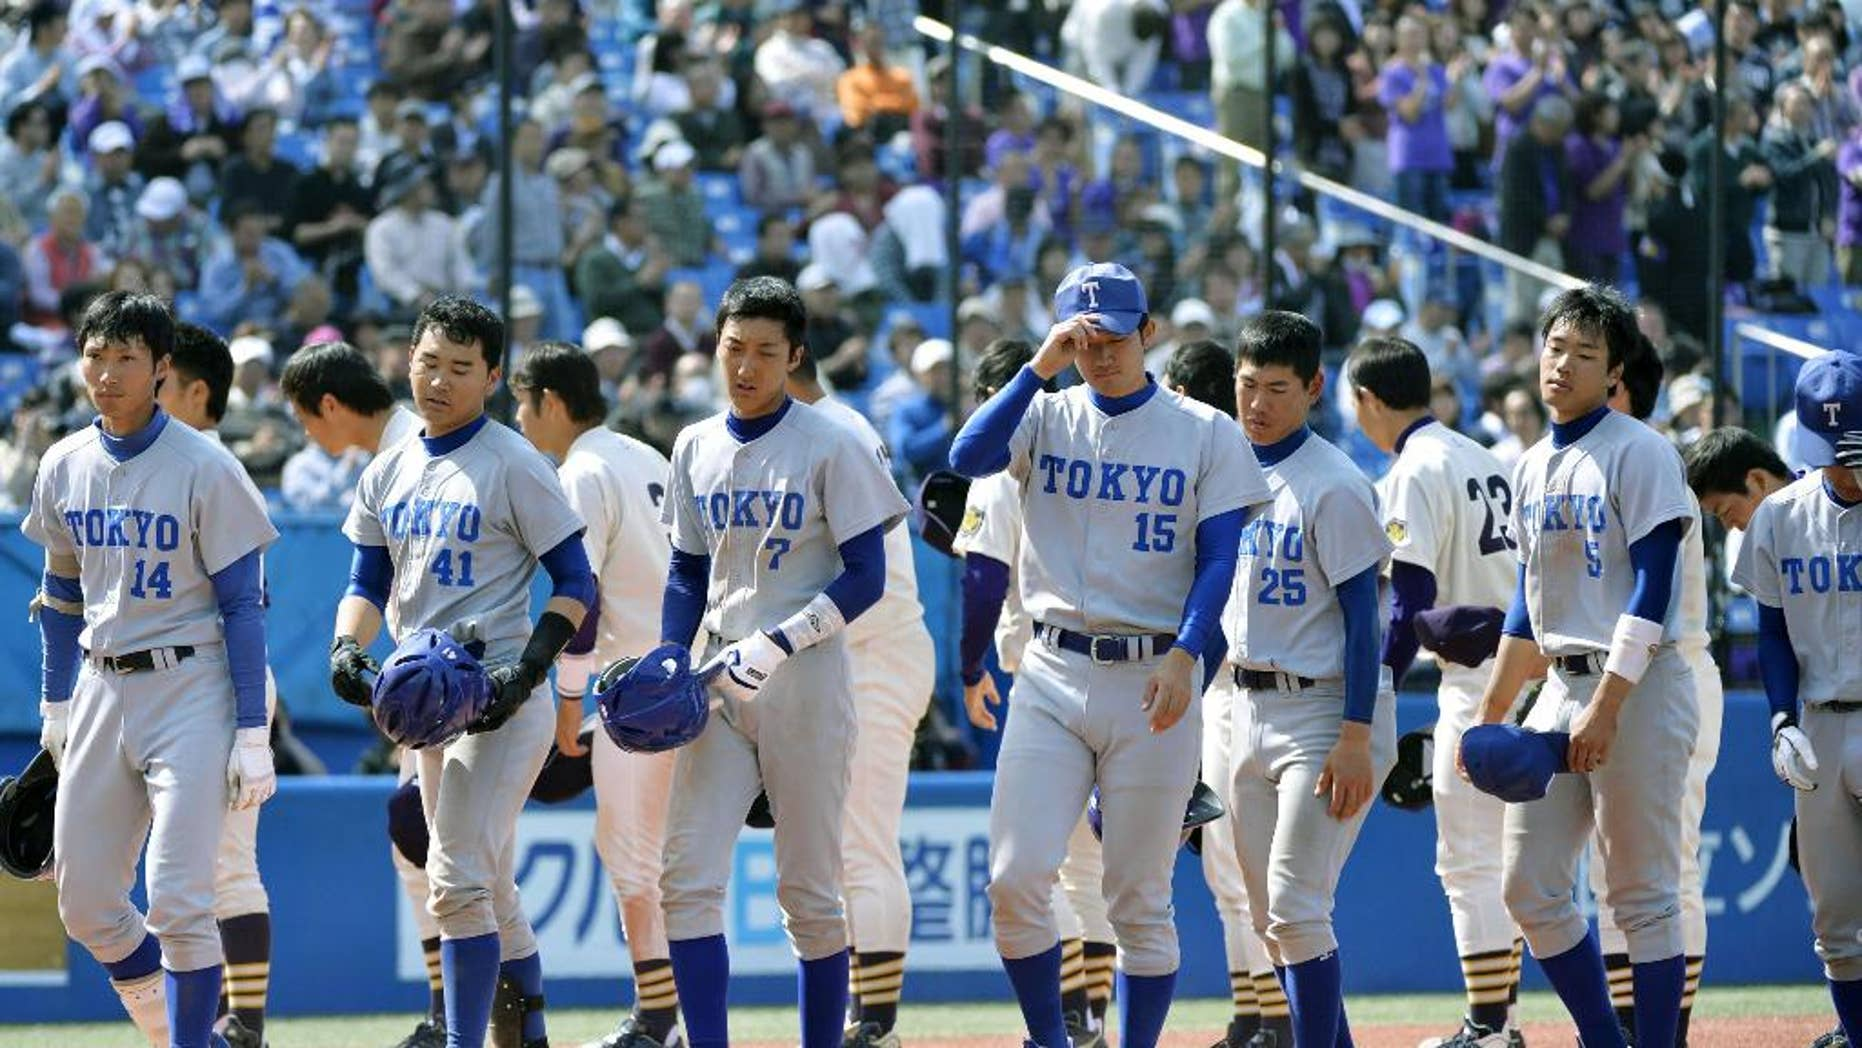 In this April 12, 2014 photo,  the players of the University of Tokyo react after their loss to Meiji University at Jingu Stadium in Tokyo.  The Japanese university baseball team extended its own record of futility on Sunday, Oct. 26, 2014 losing its 86th straight game while finishing a fourth consecutive year winless. (AP Photo/Kyodo News) JAPAN OUT, CREDIT MANDATORY